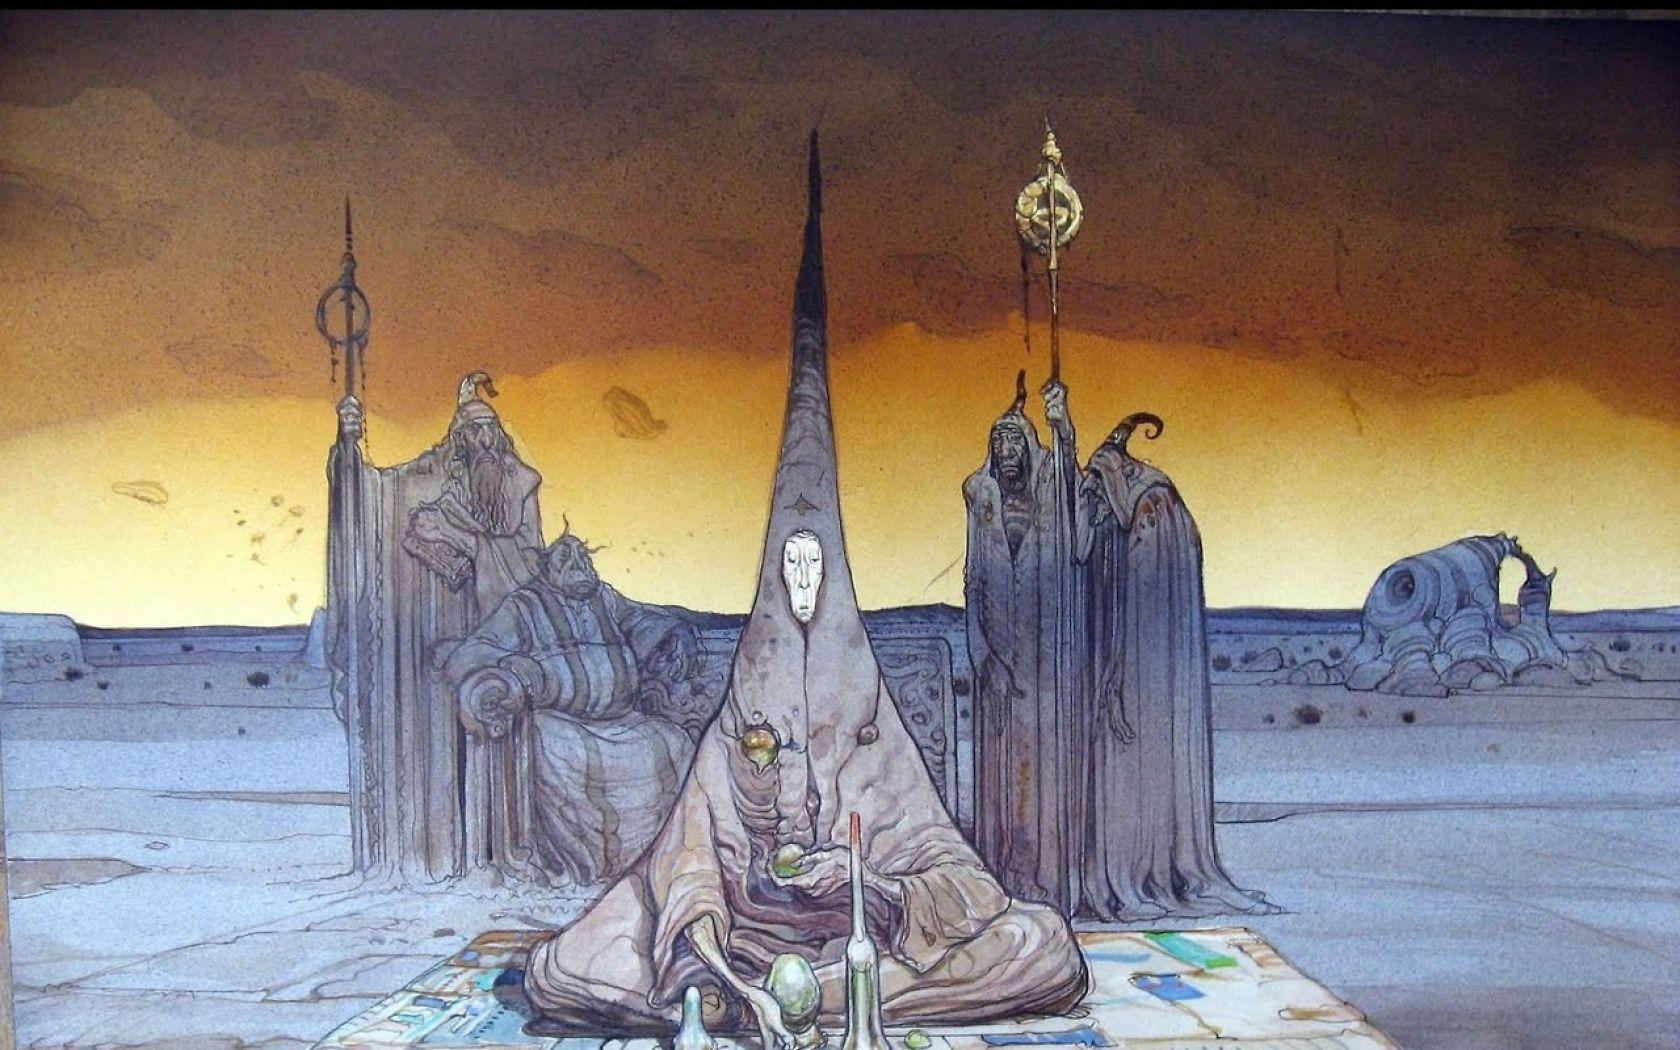 moebius wallpaper - Google Search | Illustration | Moebius art .